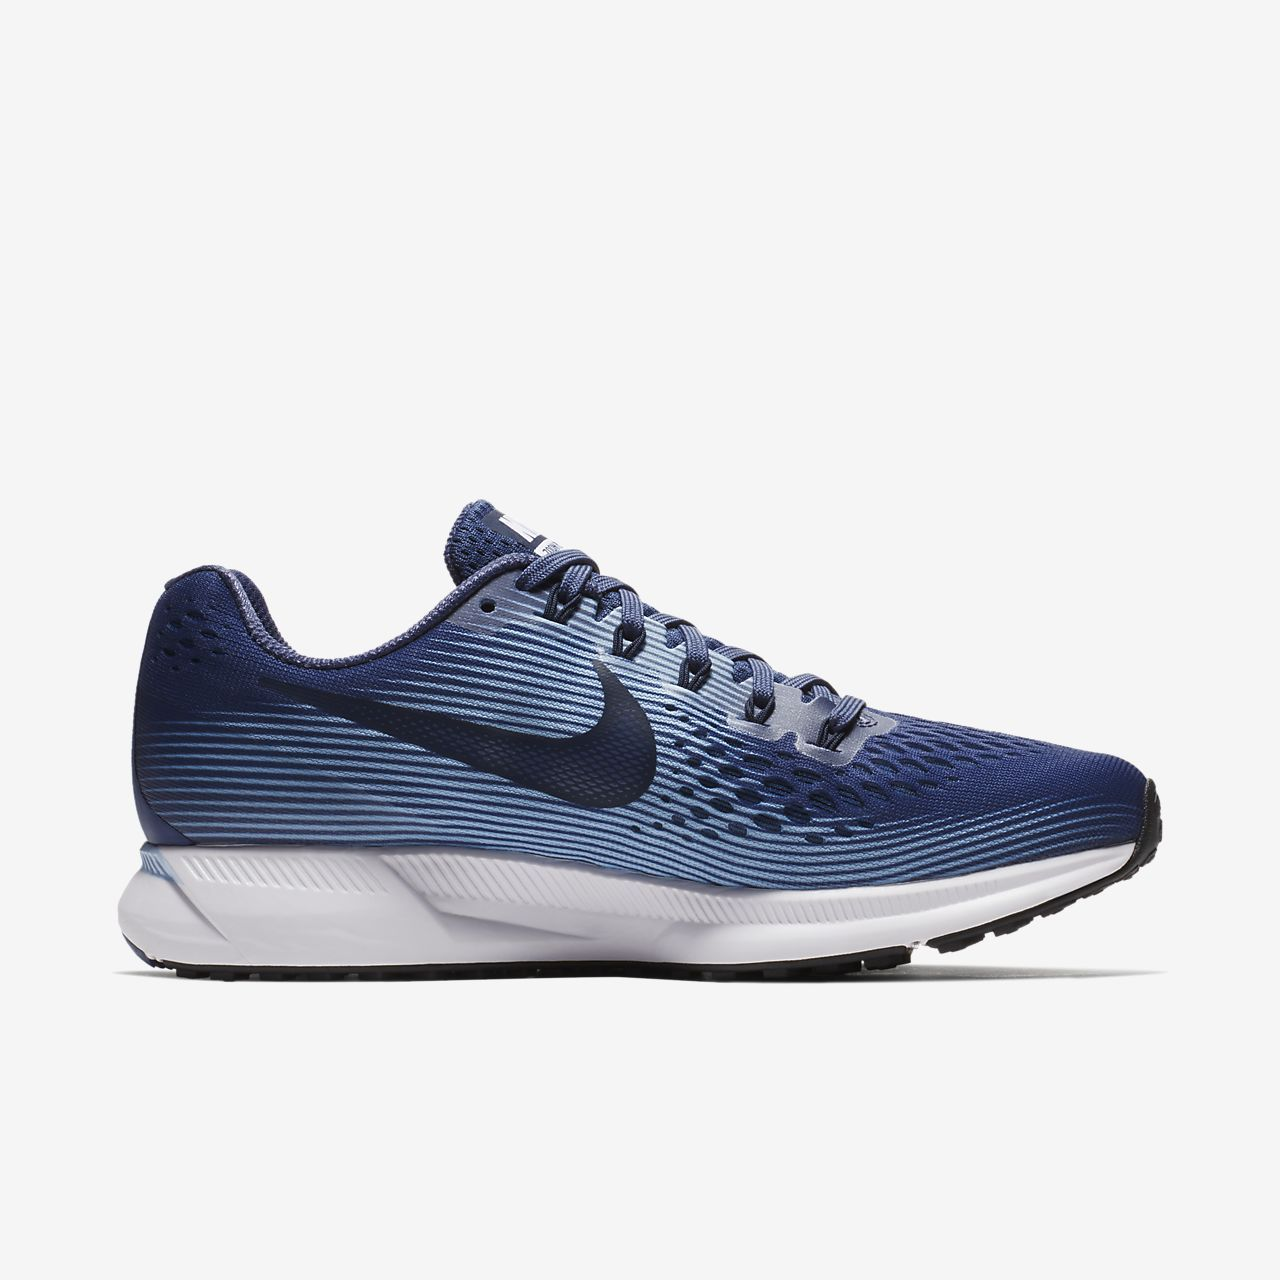 77682572e5f31 Nike Air Zoom Pegasus 34 Women's Running Shoe | Shoes | Nike air ...